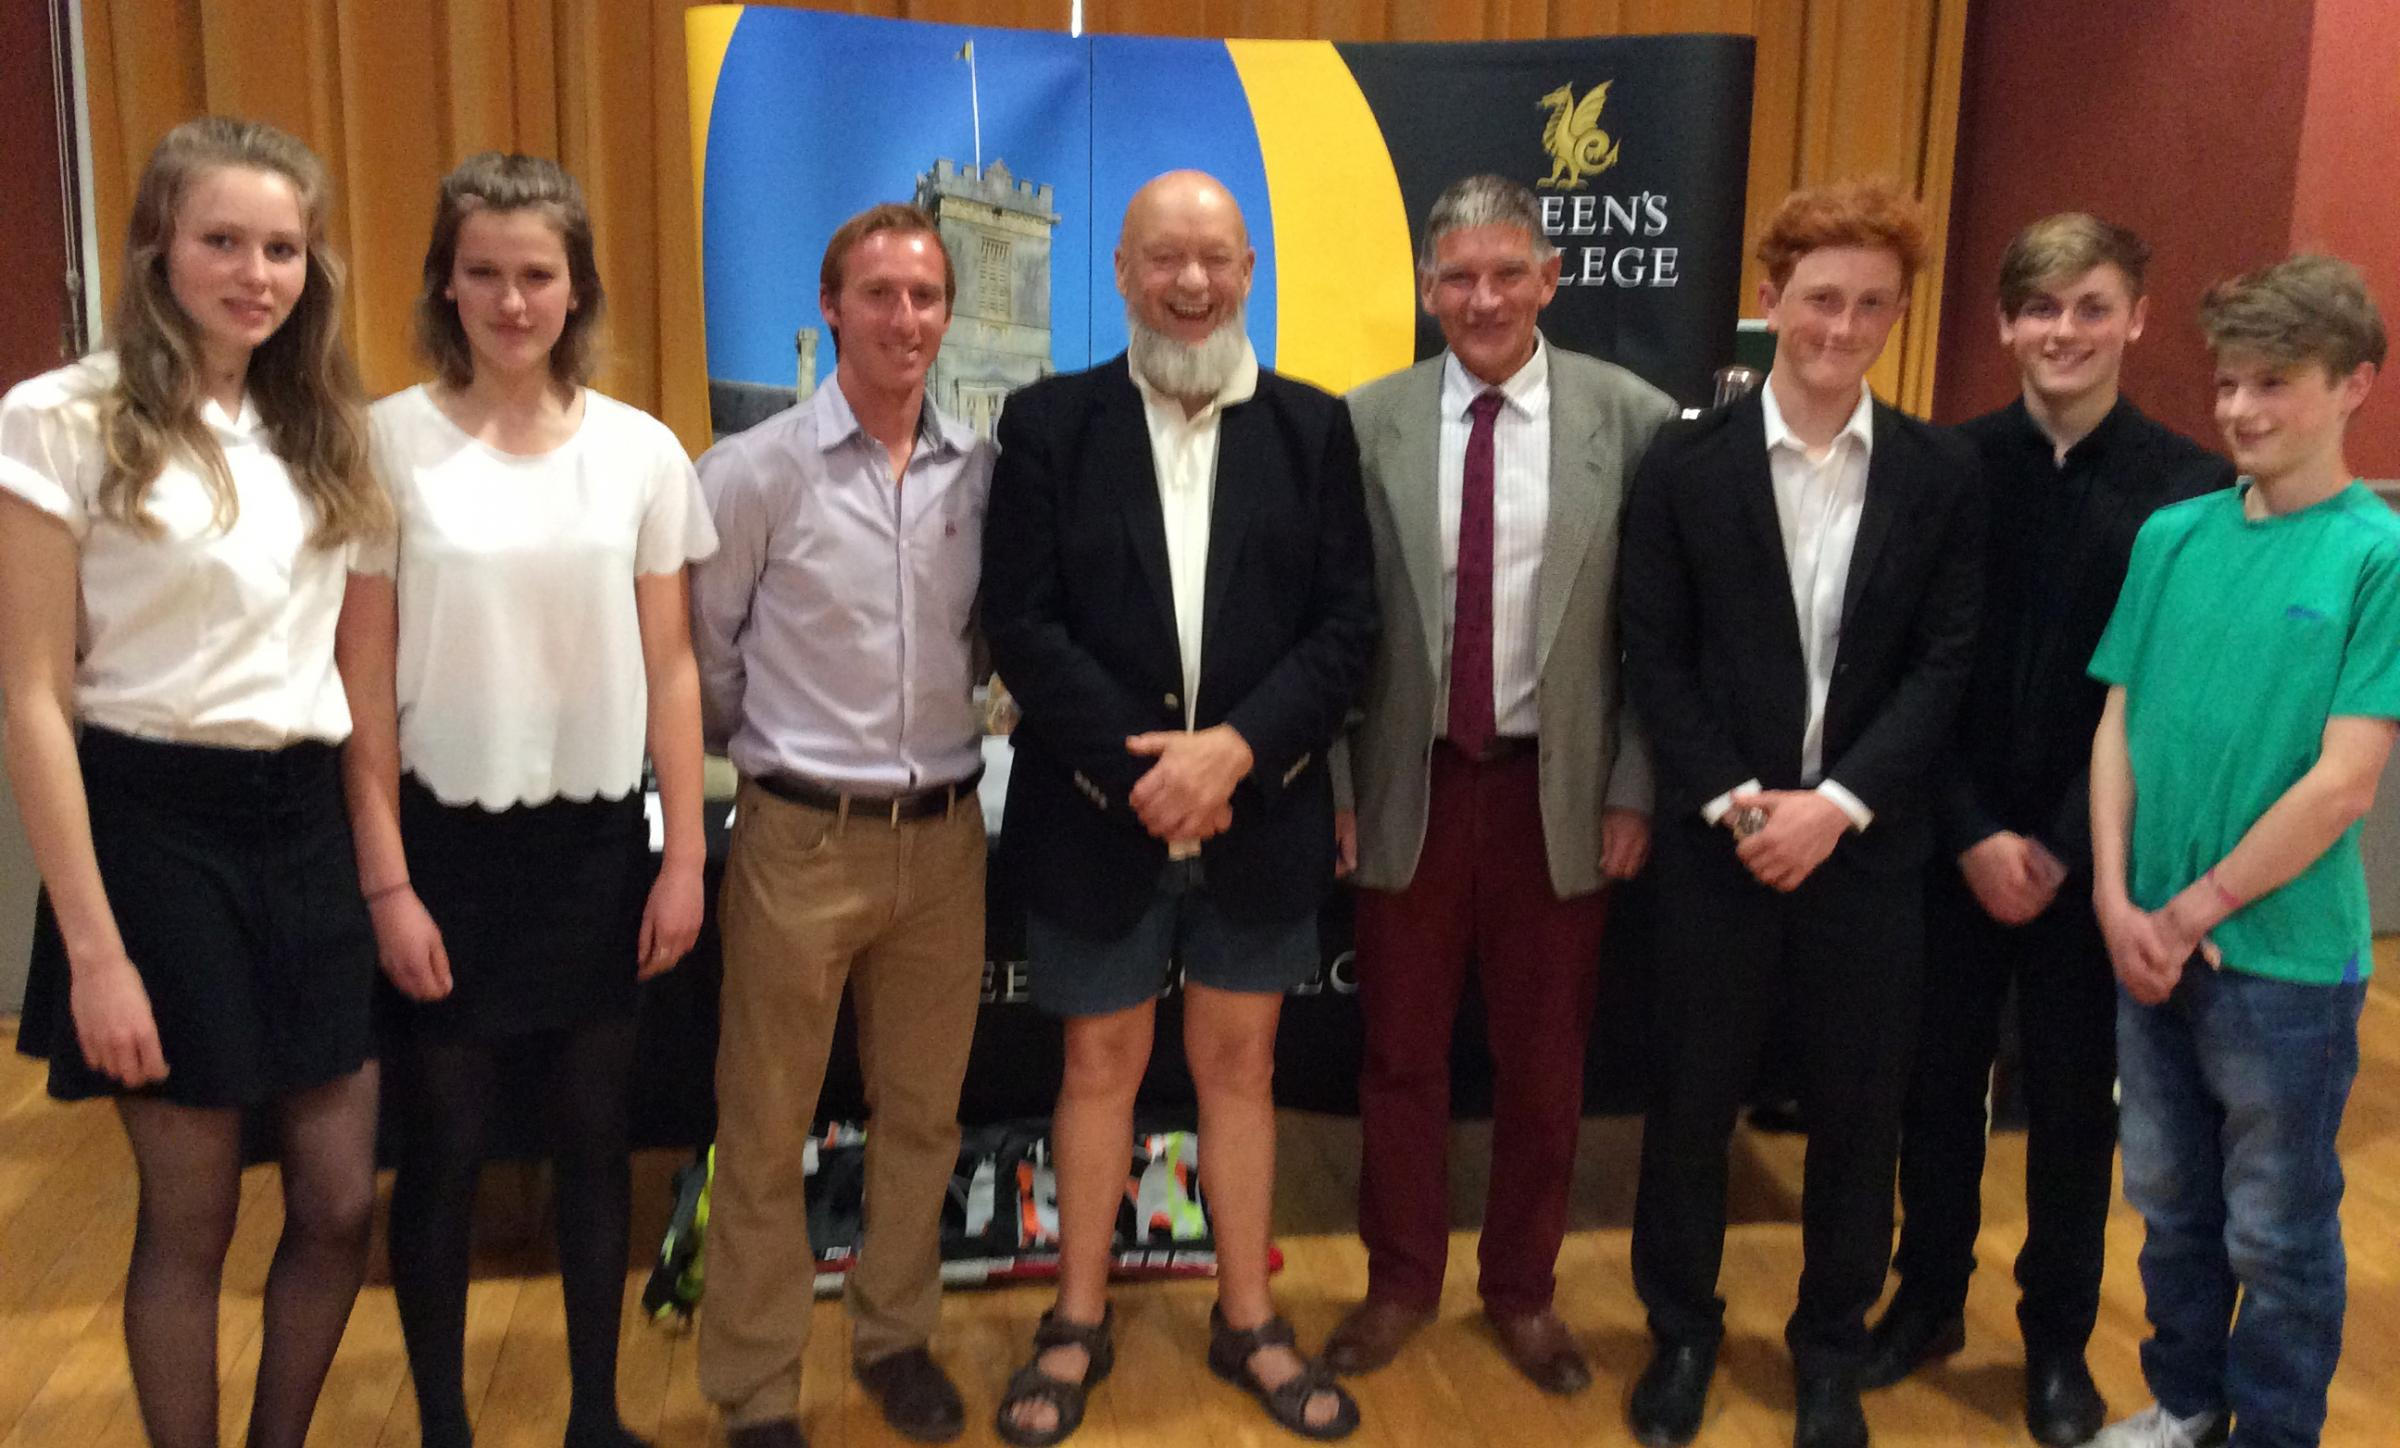 TALK: Michael Eavis at the talk and, inset, with director of hockey Ian Haley, third from left, Chris Alcock, headmaster, fourth from left and students, from left, Jess Brown, Pippa Hoyle, Tom Stevenson, Michael Nicholson and Rory Nicholson